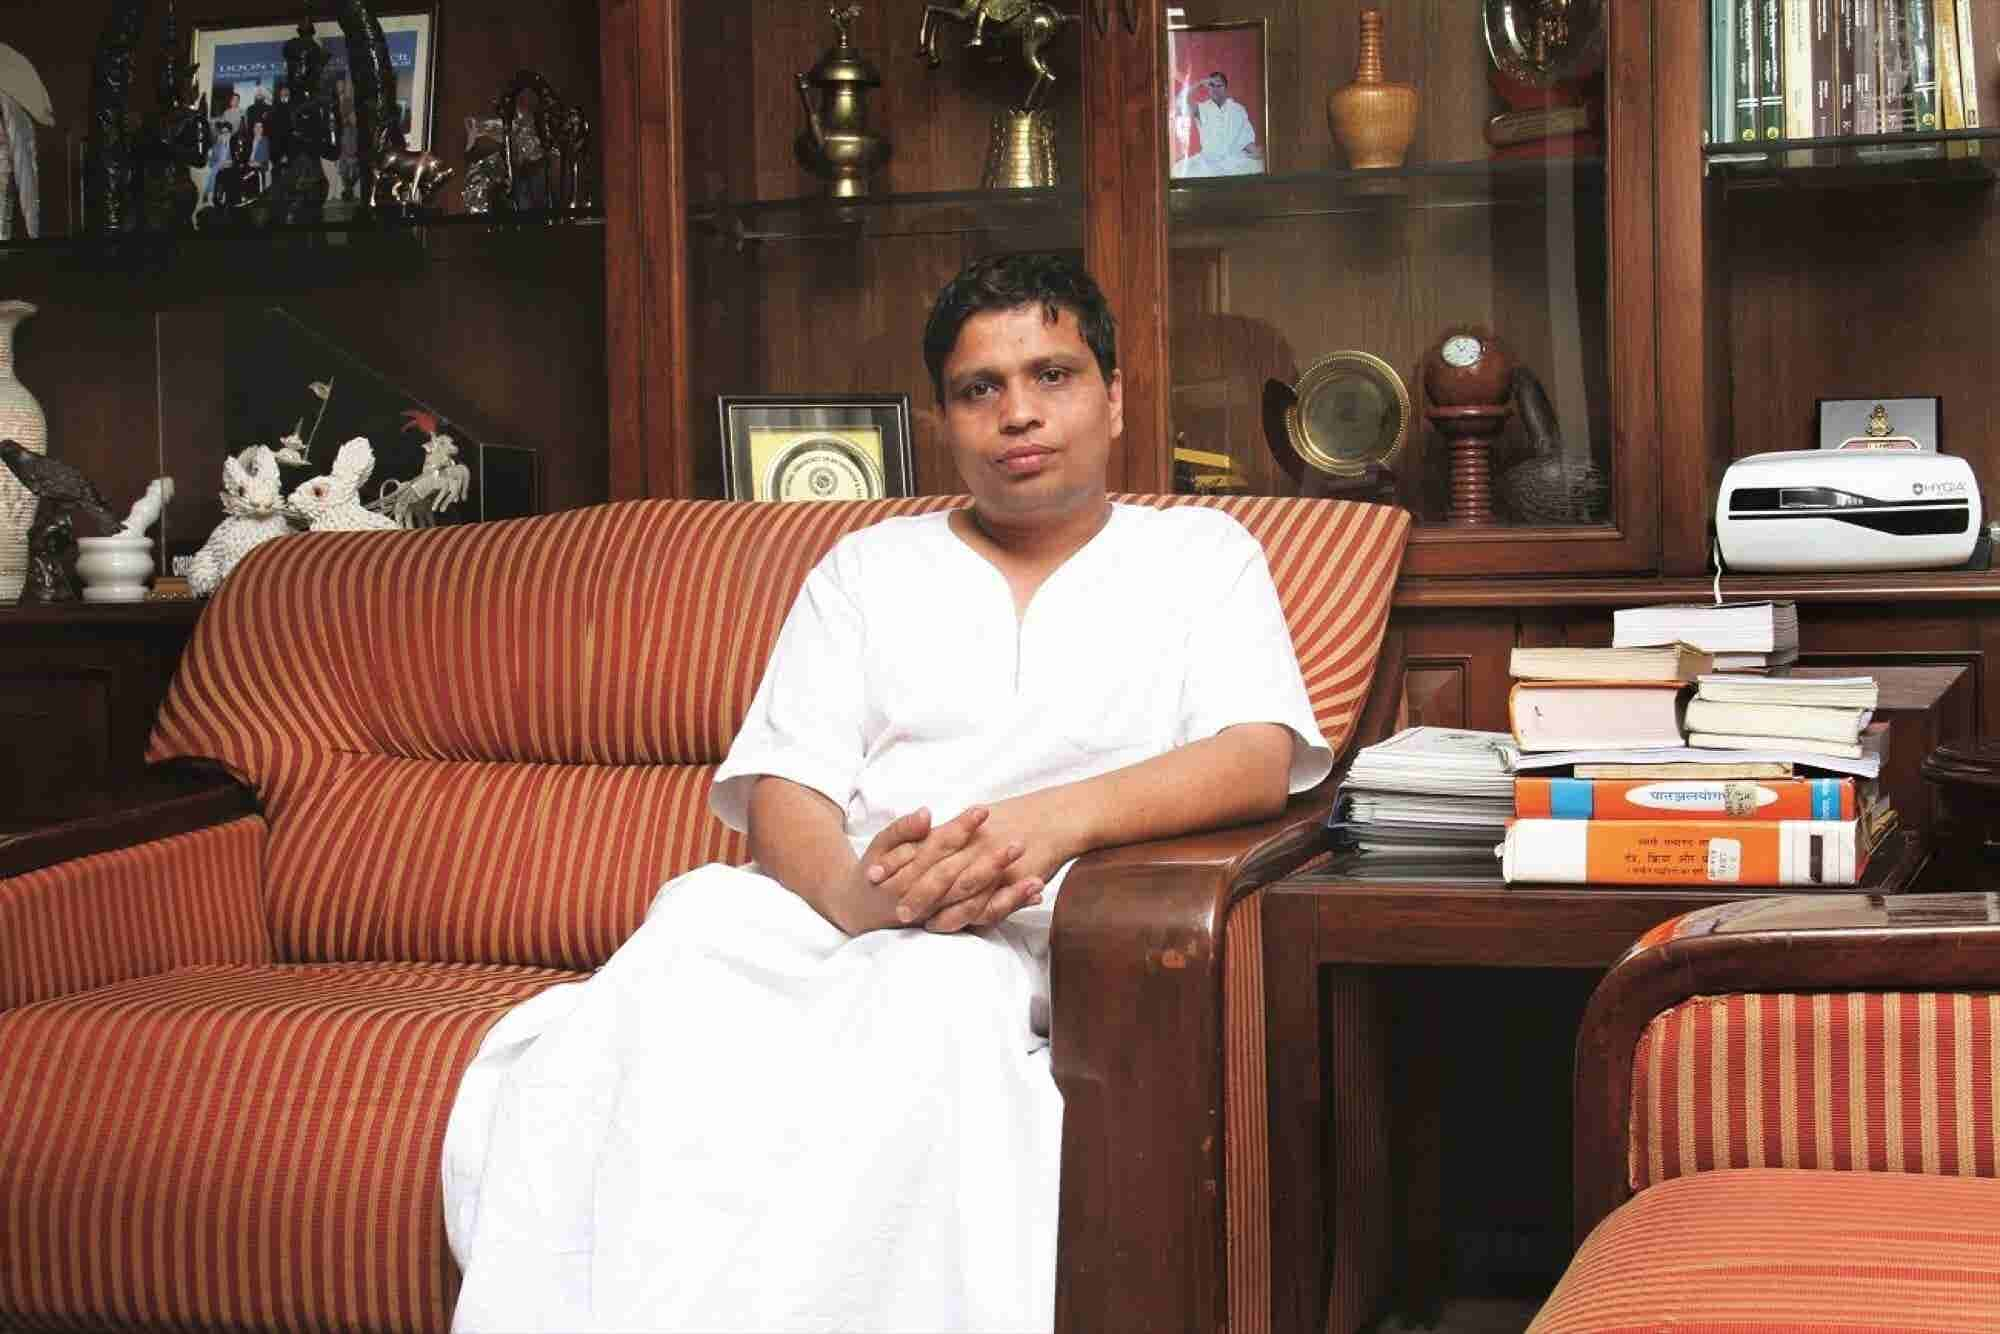 This Kurta-dhoti Clad CEO is Now Among the Richest